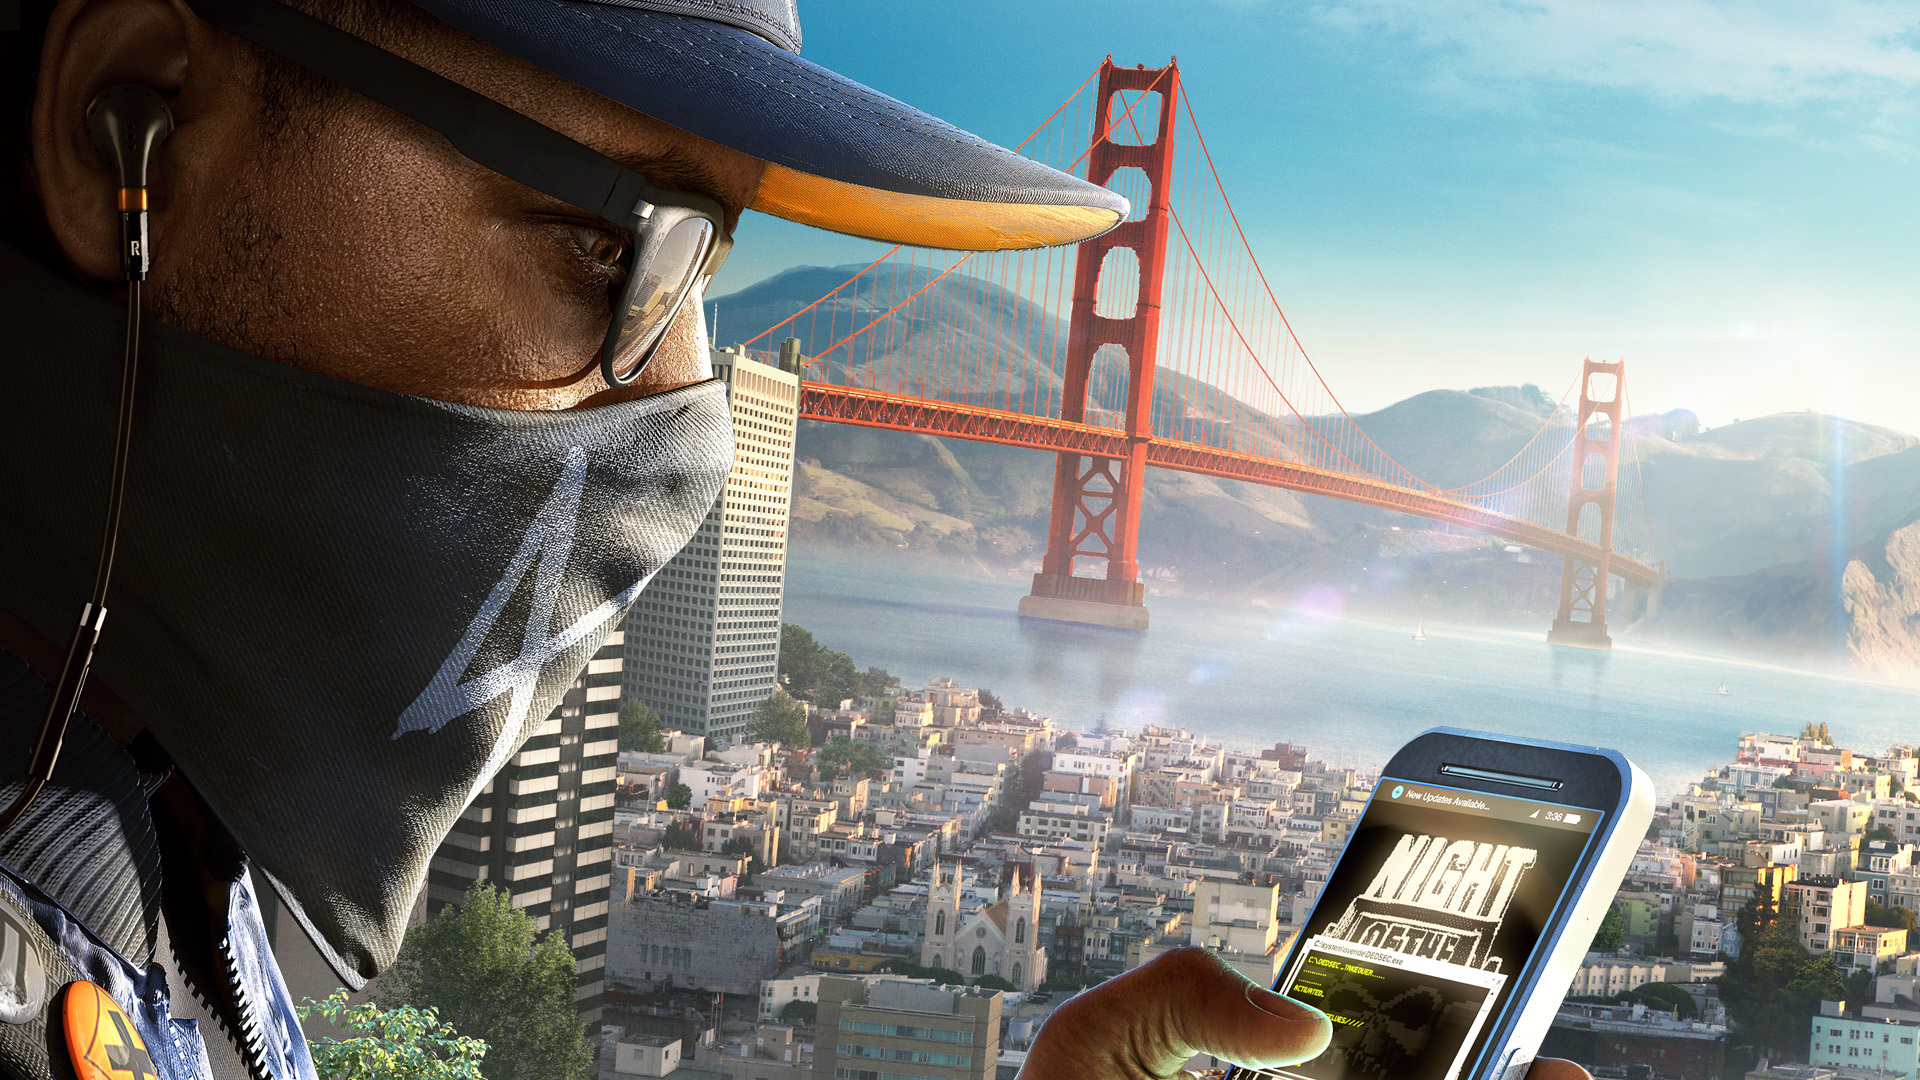 Watch Dogs 2 HD Desktop - Football Manager 2020, Watch Dogs 2, και Stick it δωρεάν από την Epic Games